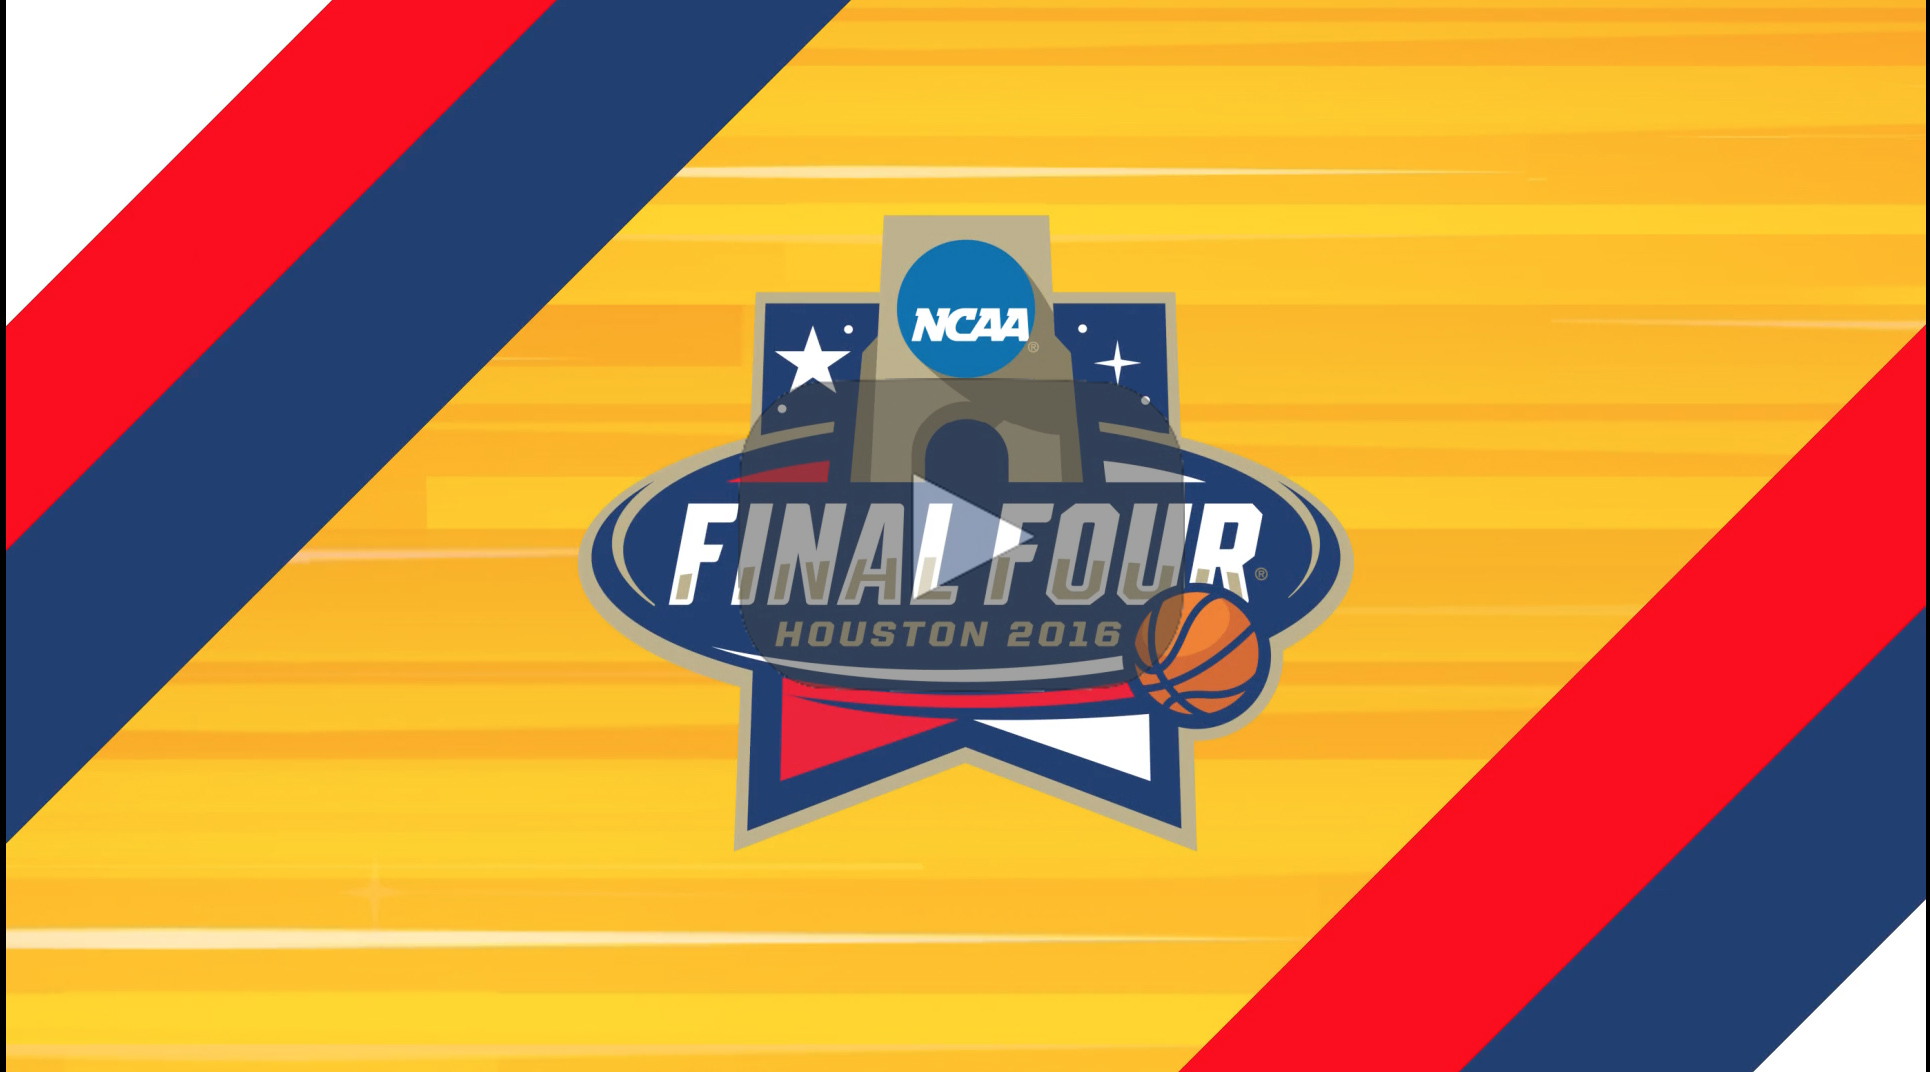 Official Court of the 2016 NCAA Men's Final Four